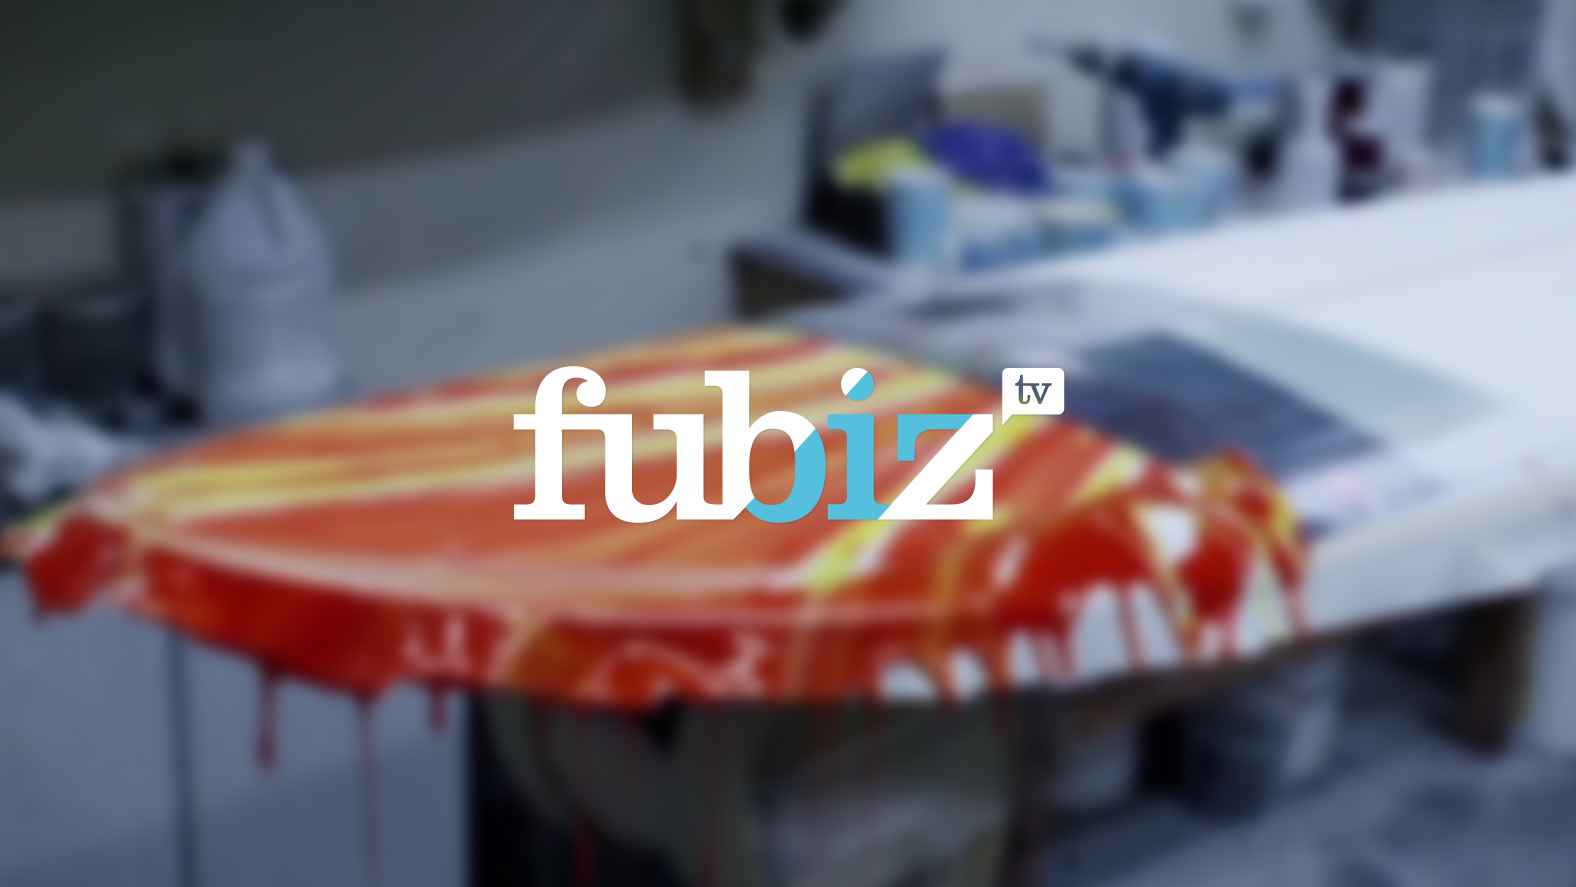 Fubiz TV 12 – Preview3 – Fubiz